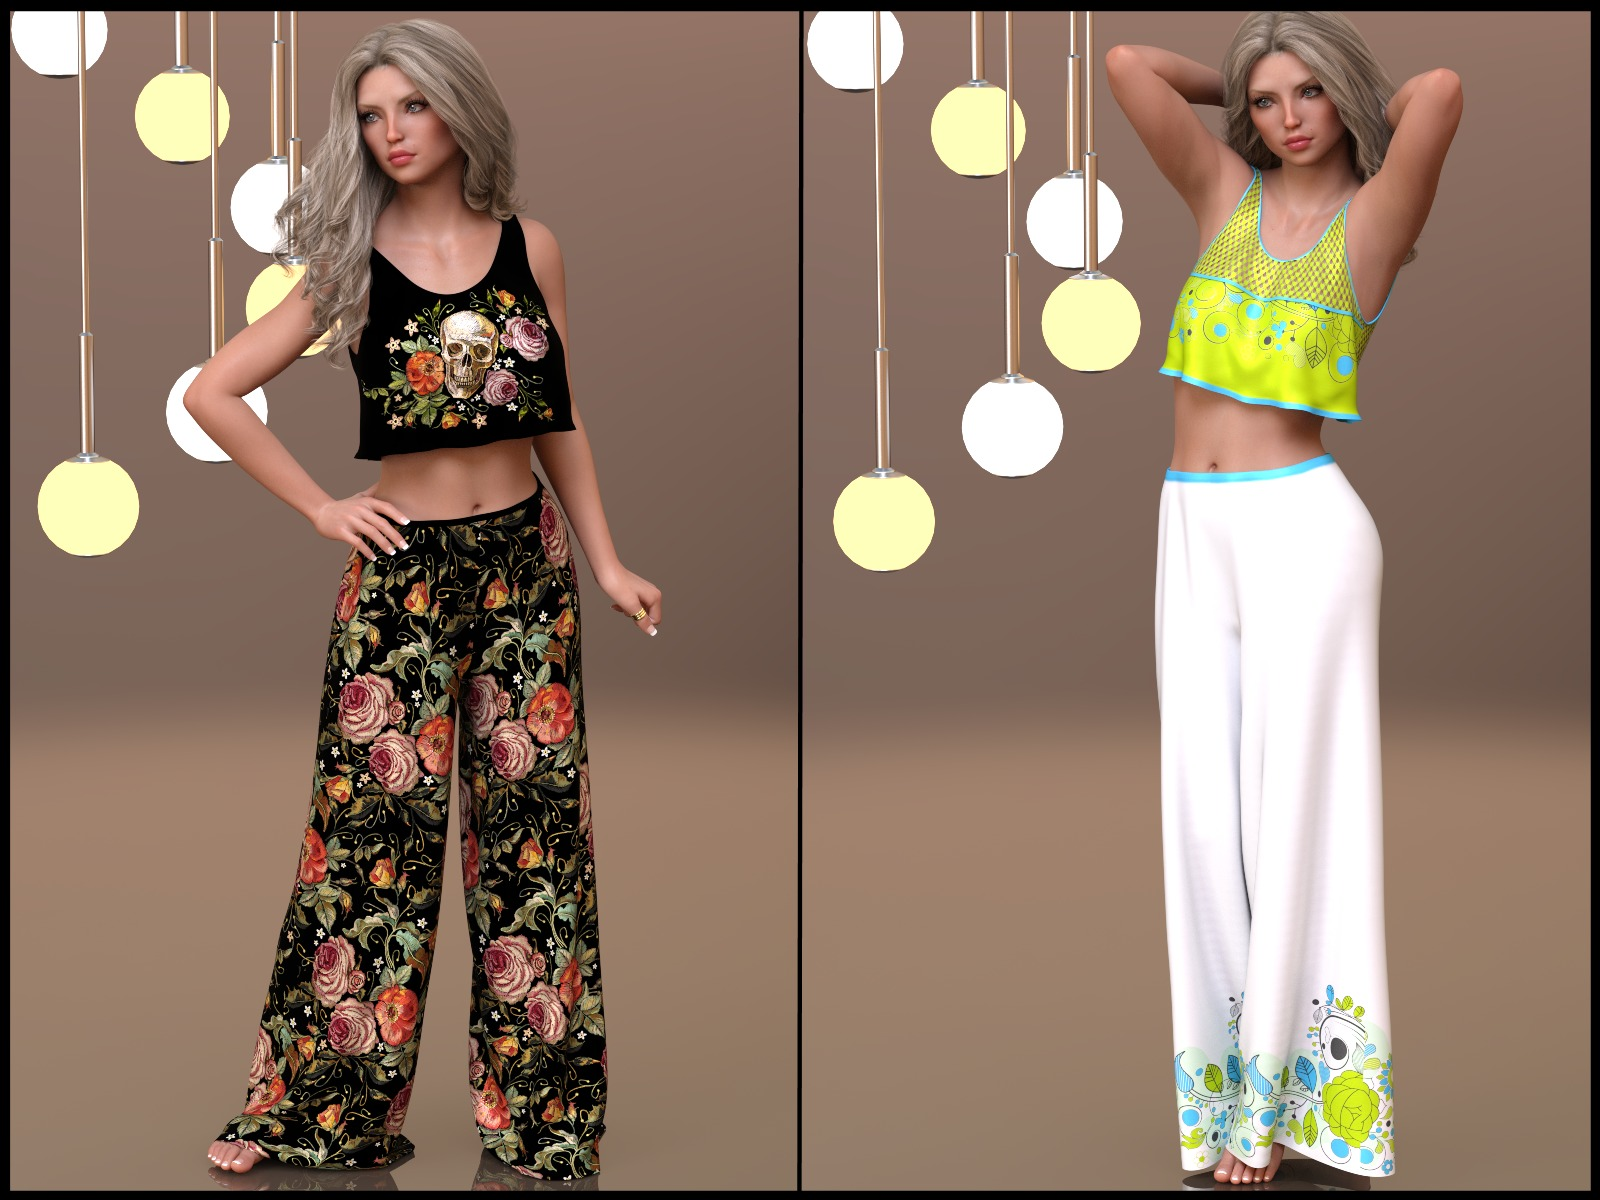 7th Ave: dForce - Lounging Pants Suit for G8F by 3-DArena